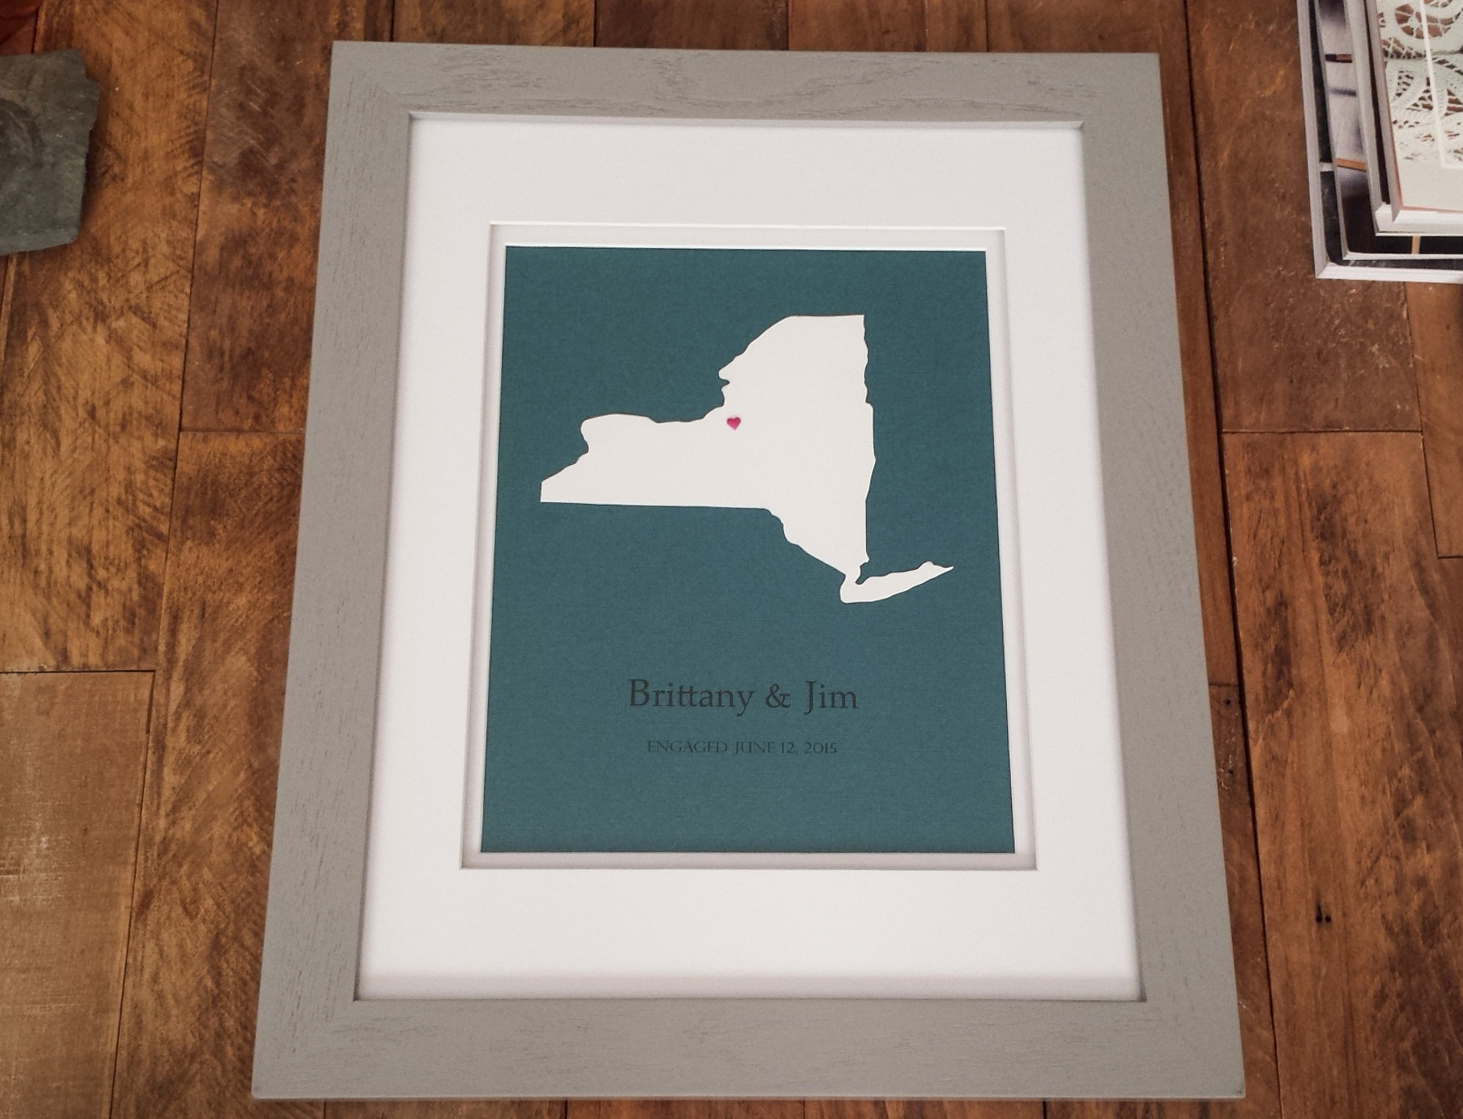 Framed State Engagement Gift